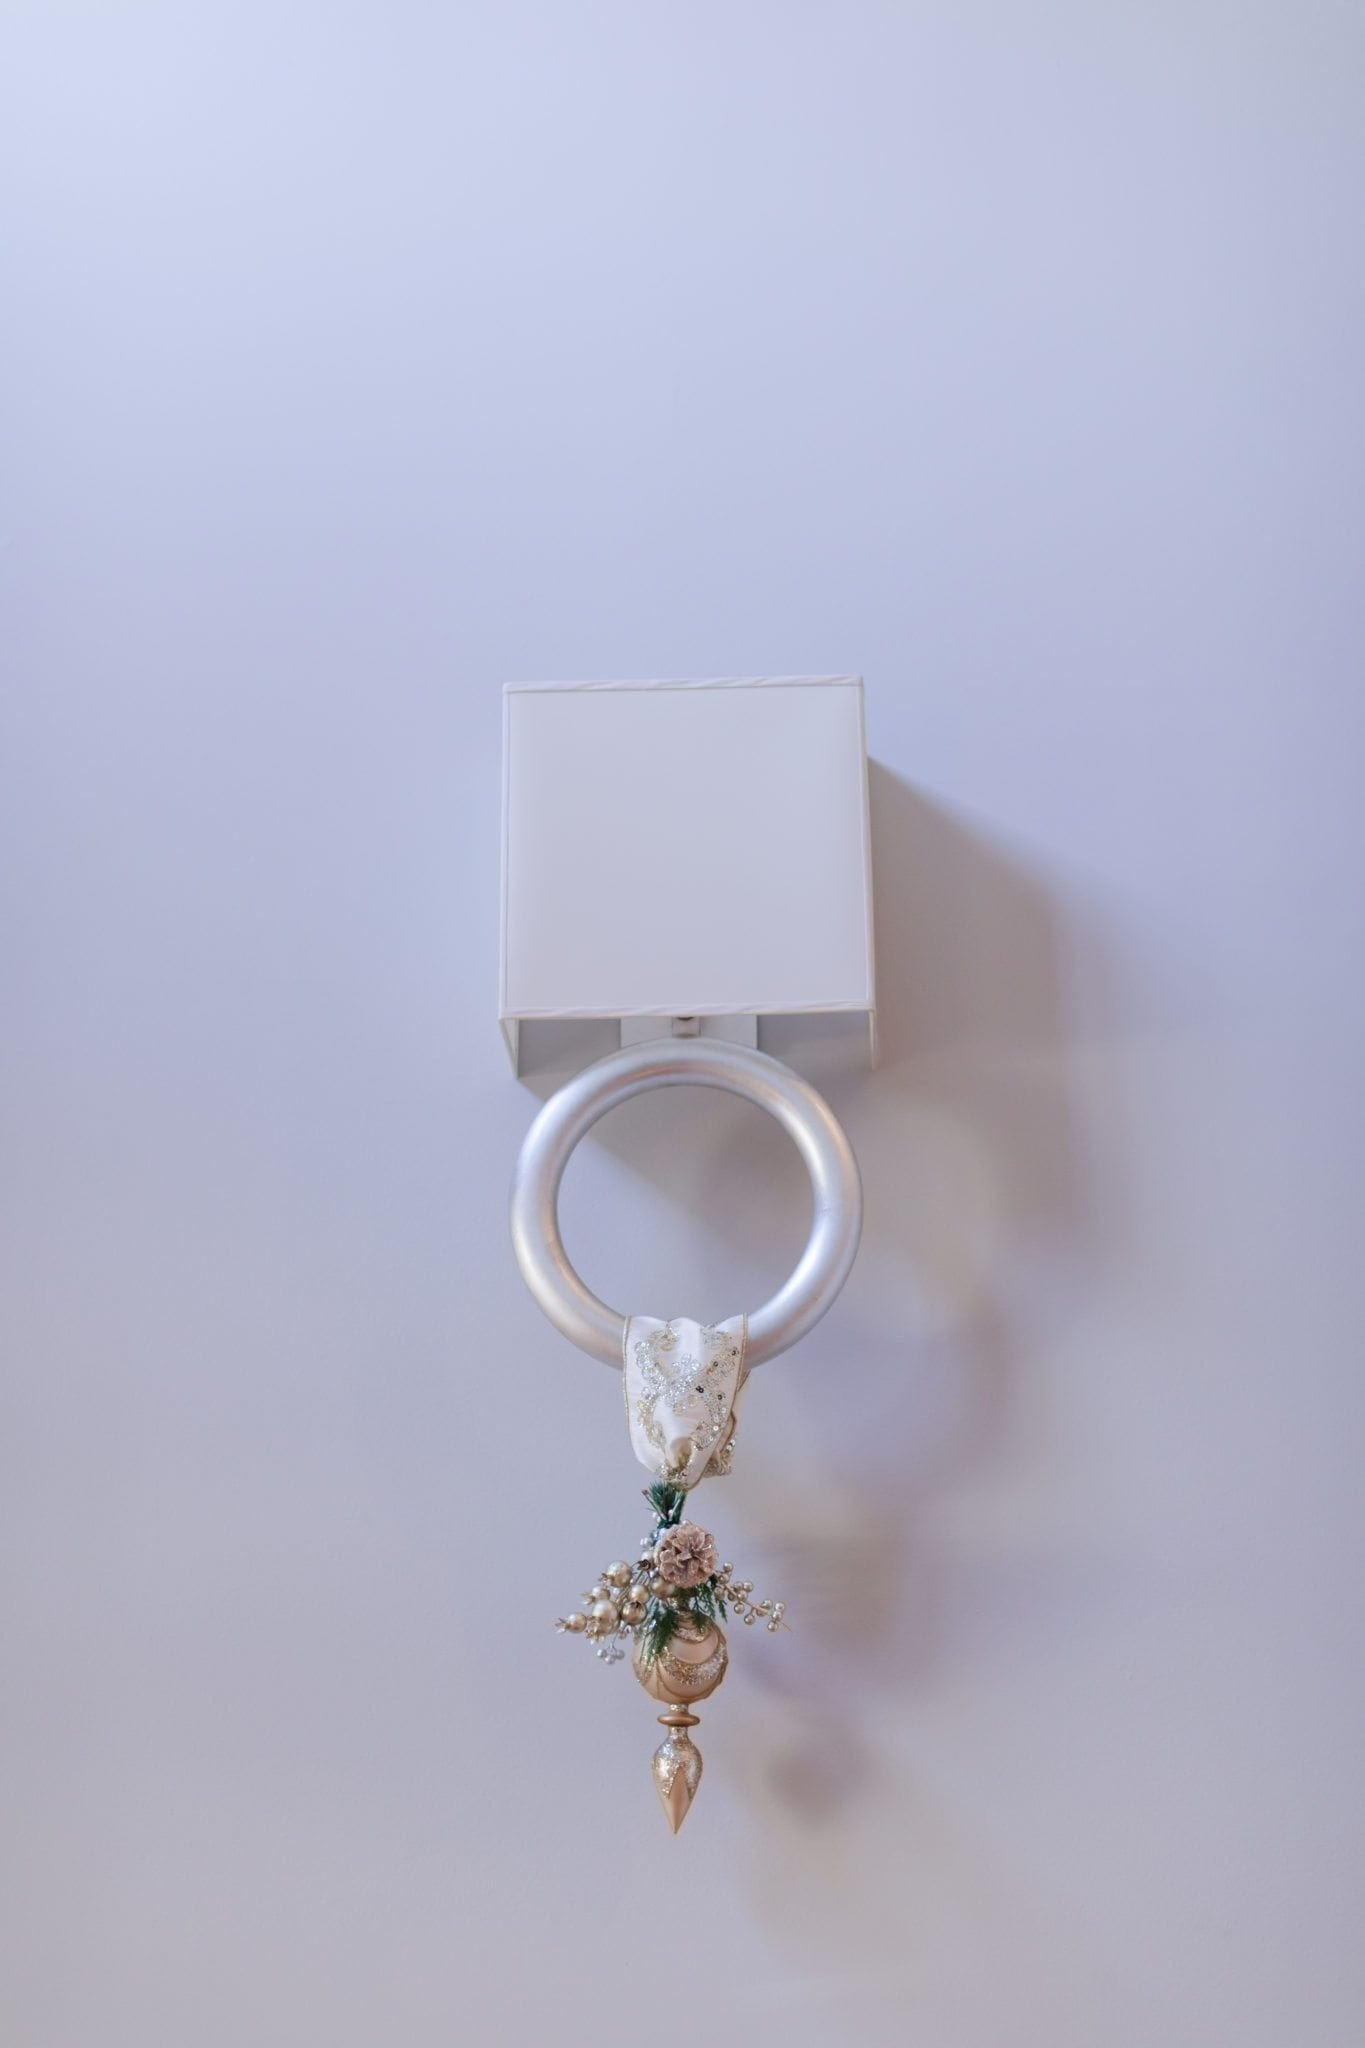 Ornament hanging from light fixture. Silver sconce with shade.